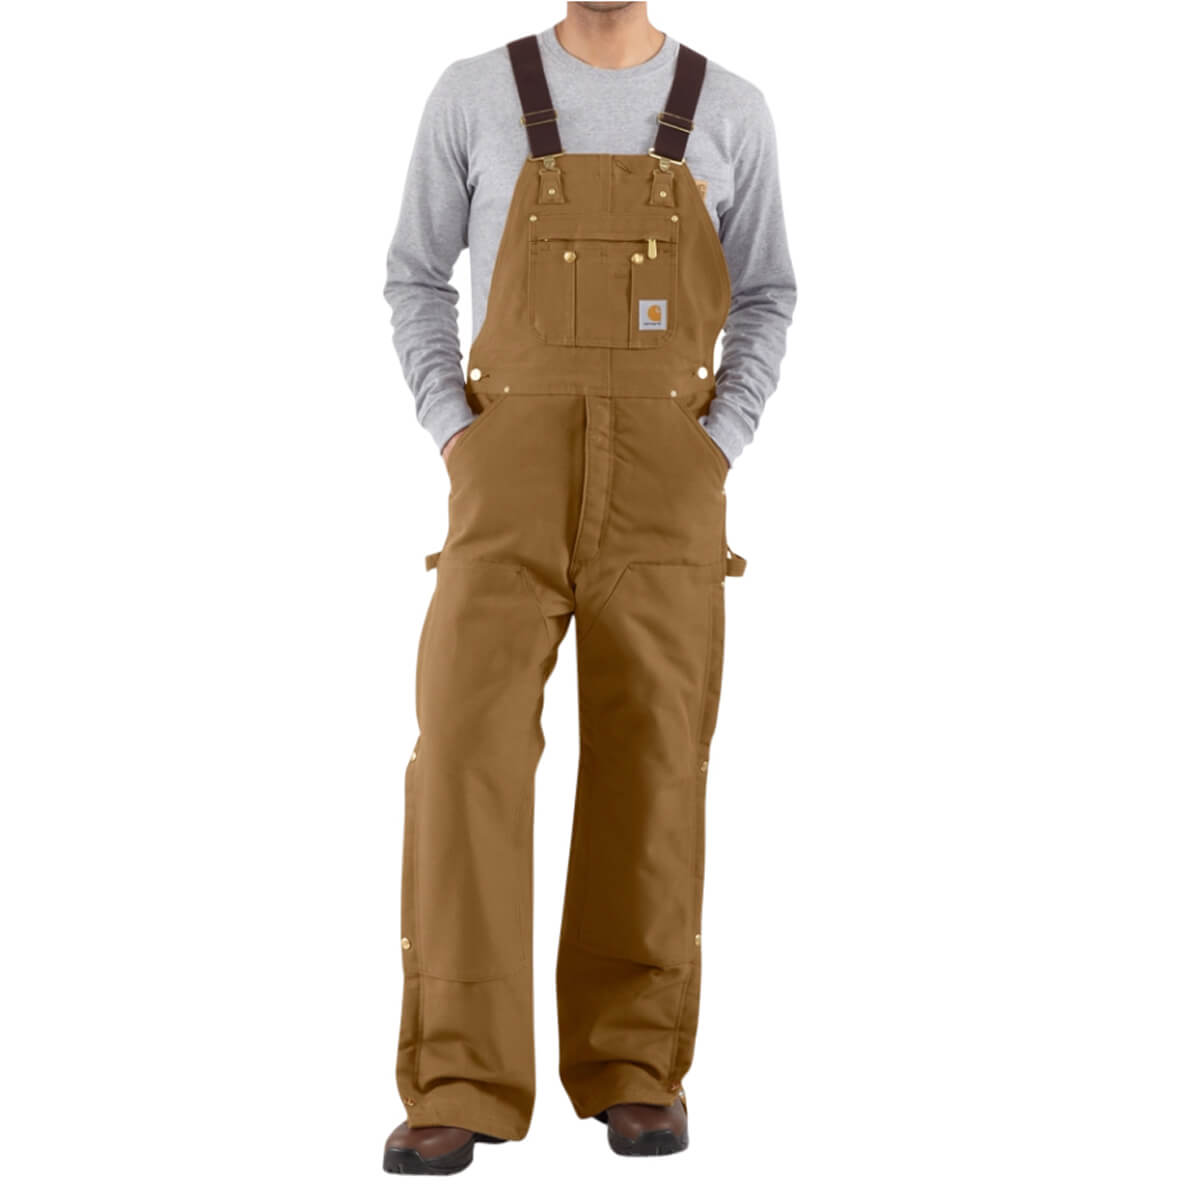 Carhartt Brown Duck Zip-to-Thigh Quilt-Lined Bib Overall